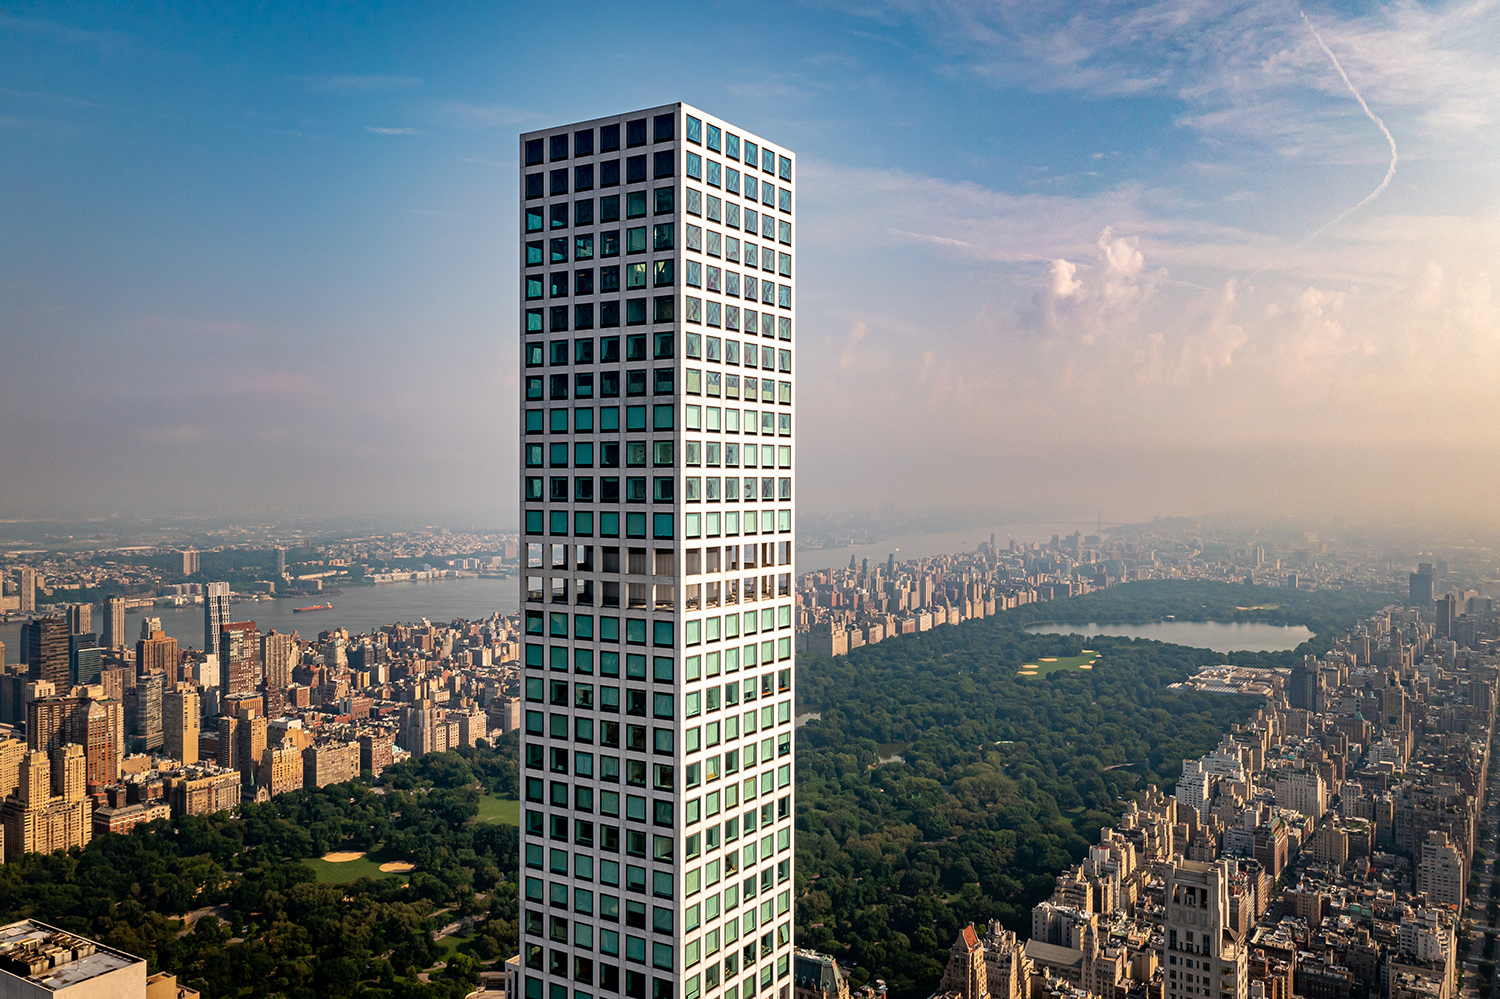 The true Penthouse of 432 Park Avenue – floor 96 of 96 – at the world's most celebrated ultra-luxury tower.  One-of-one. A trophy unlike any other in the world. Never before on the market. All furniture and art will be included in the sale.  The apex Penthouse is a sky mansion with 8,255 sq. ft. of pristine interior space. Unique features include a 93-foot-long living and dining great-room, 240 linear feet of glass with 360-degree views over Manhattan through 24 10 ft. × 10 ft. windows, and soaring 12.5 ft ceilings.  This home has the perfect layout, with 6 bedrooms plus a library, 7 full bathrooms, 2 powder rooms, and a collection of high-end fixtures and finishes like herringbone white oak floors, and designer furniture from Fendi, Bentley, and Hermes.  A private elevator landing opens into a sweeping east-facing great room with a wood-burning fireplace and a formal dining area. The sublime eat-in kitchen has the most stunning views of Central Park, and is equipped with marble floors, countertops, and backsplashes, white lacquer and natural oak cabinets, polished chrome fixtures from Dornbracht, a massive island, a north-facing breakfast bar, a butler's pantry with a utility sink, and a suite of high-end appliances from Miele. A pair of powder rooms serve the main living and dining spaces.  The primary suite is a sanctuary corner retreat with Central Park views, a sitting room, and couples' walk-through dressing rooms that lead to separate windowed bathrooms with slab marble walls, radiant heated floors, custom wood cabinets, floating tubs with incredible views, and carved oval sinks. Each of the remaining five bedrooms have ample closet space and a full en-suite bathroom.  A collaboration between Rafael Vinoly and Deborah Berke, 432 Park Avenue is an ultra-luxury condominium and one of the tallest residential towers in the world. Situated on Park Avenue just a few blocks from Central Park, the building rises 1,396 feet and has 30,000 sq. ft. of exclusive lifestyl